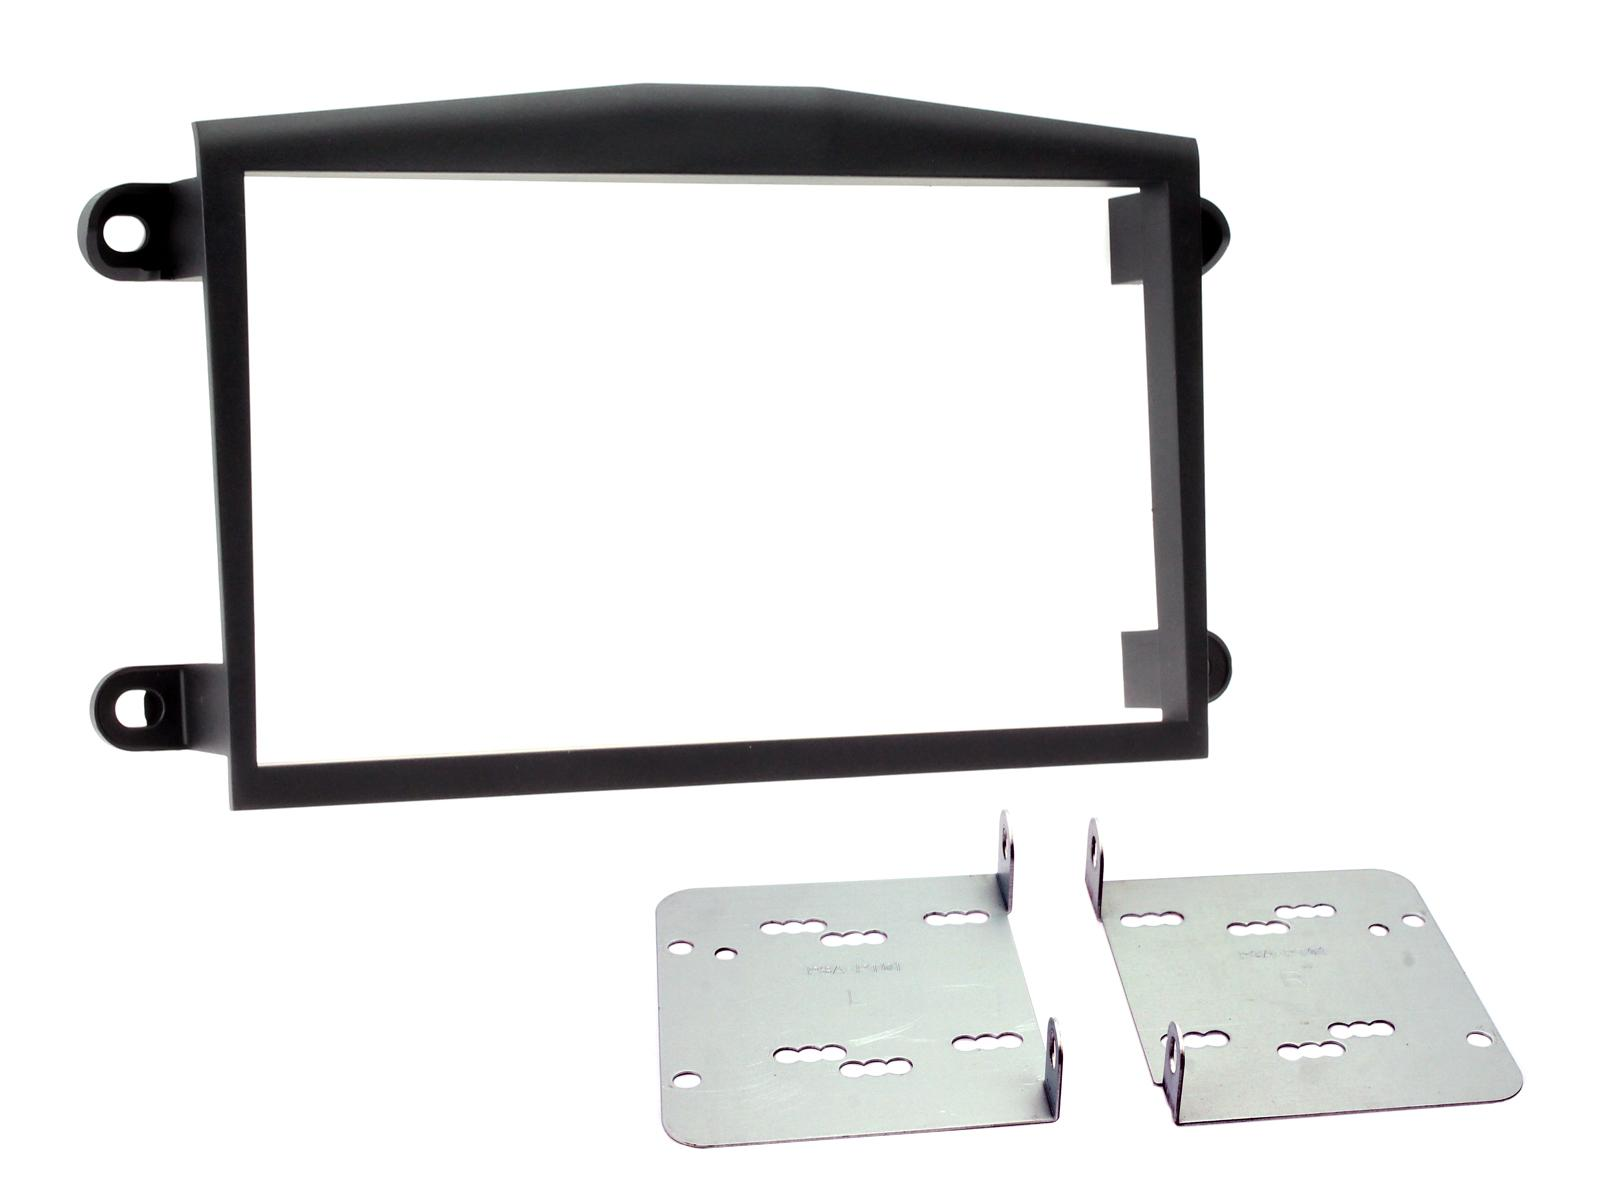 Rover 75 1999-2005 Double Din Fascia Black Connects2 CT23RO01 for